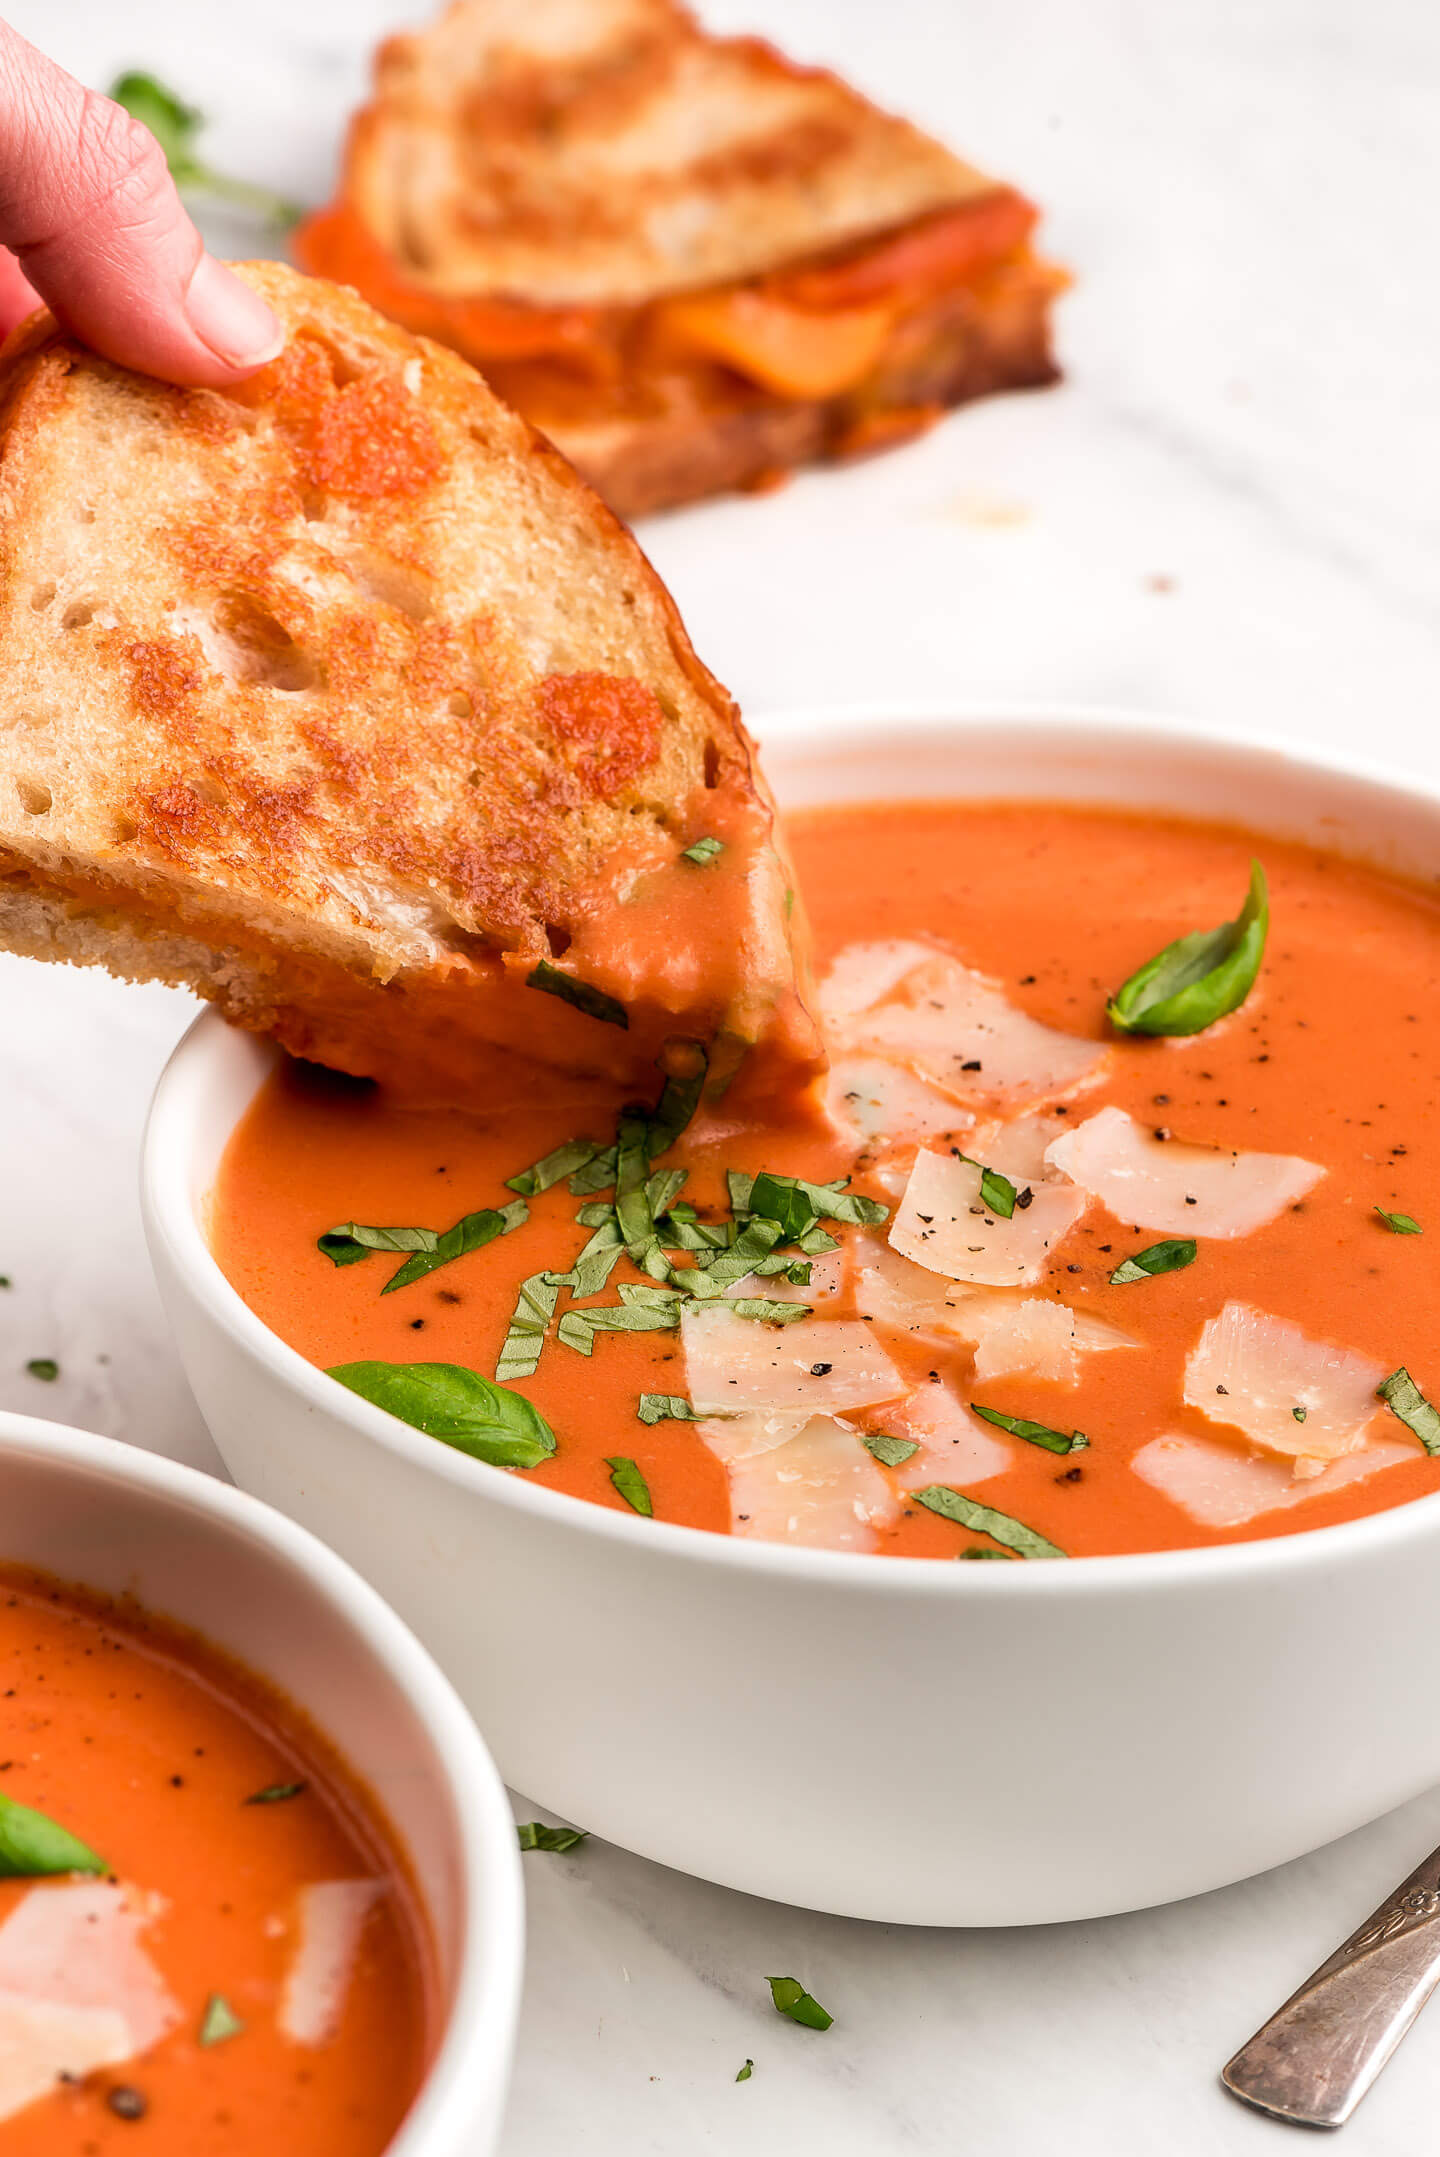 Dipping a grilled cheese sandwich into a bowl of Tomato Basil Soup.